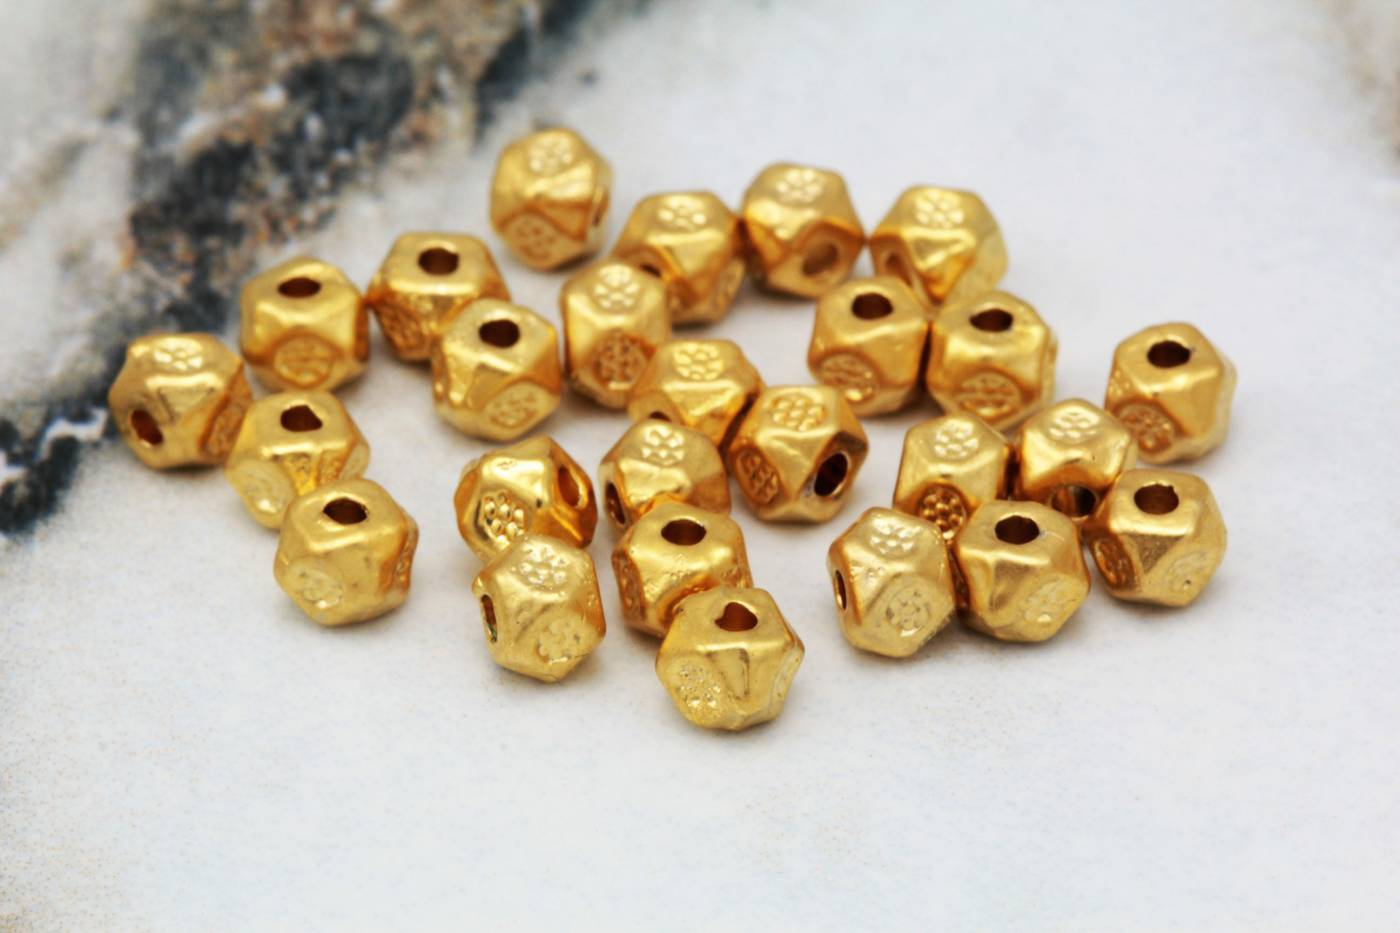 4mm-metal-mini-gold-cube-spacer-beads.jpg